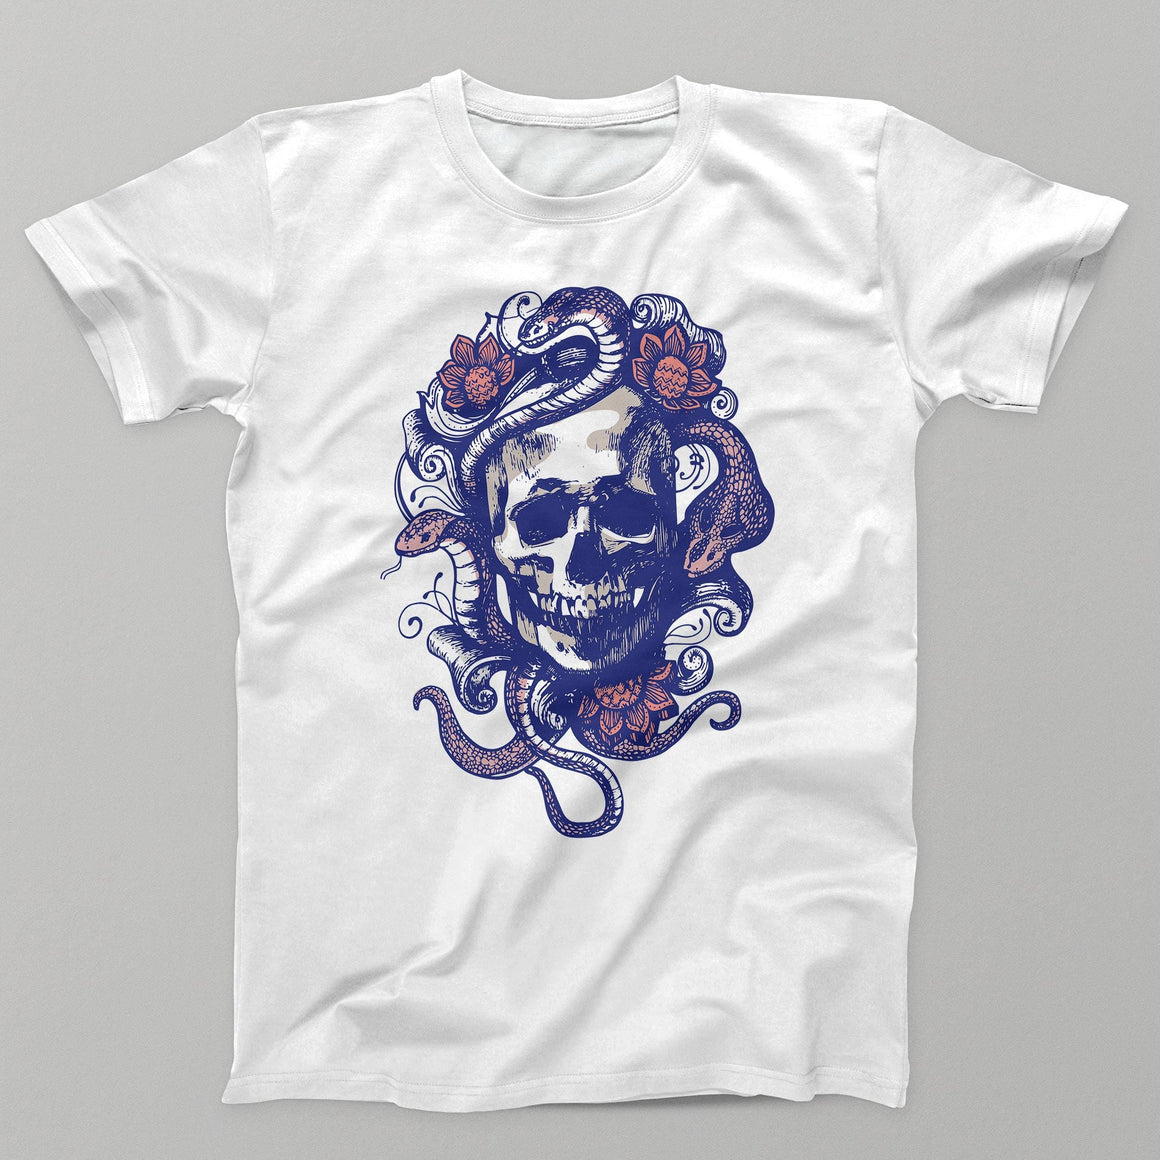 Snake Head - Men's/Unisex T-shirt